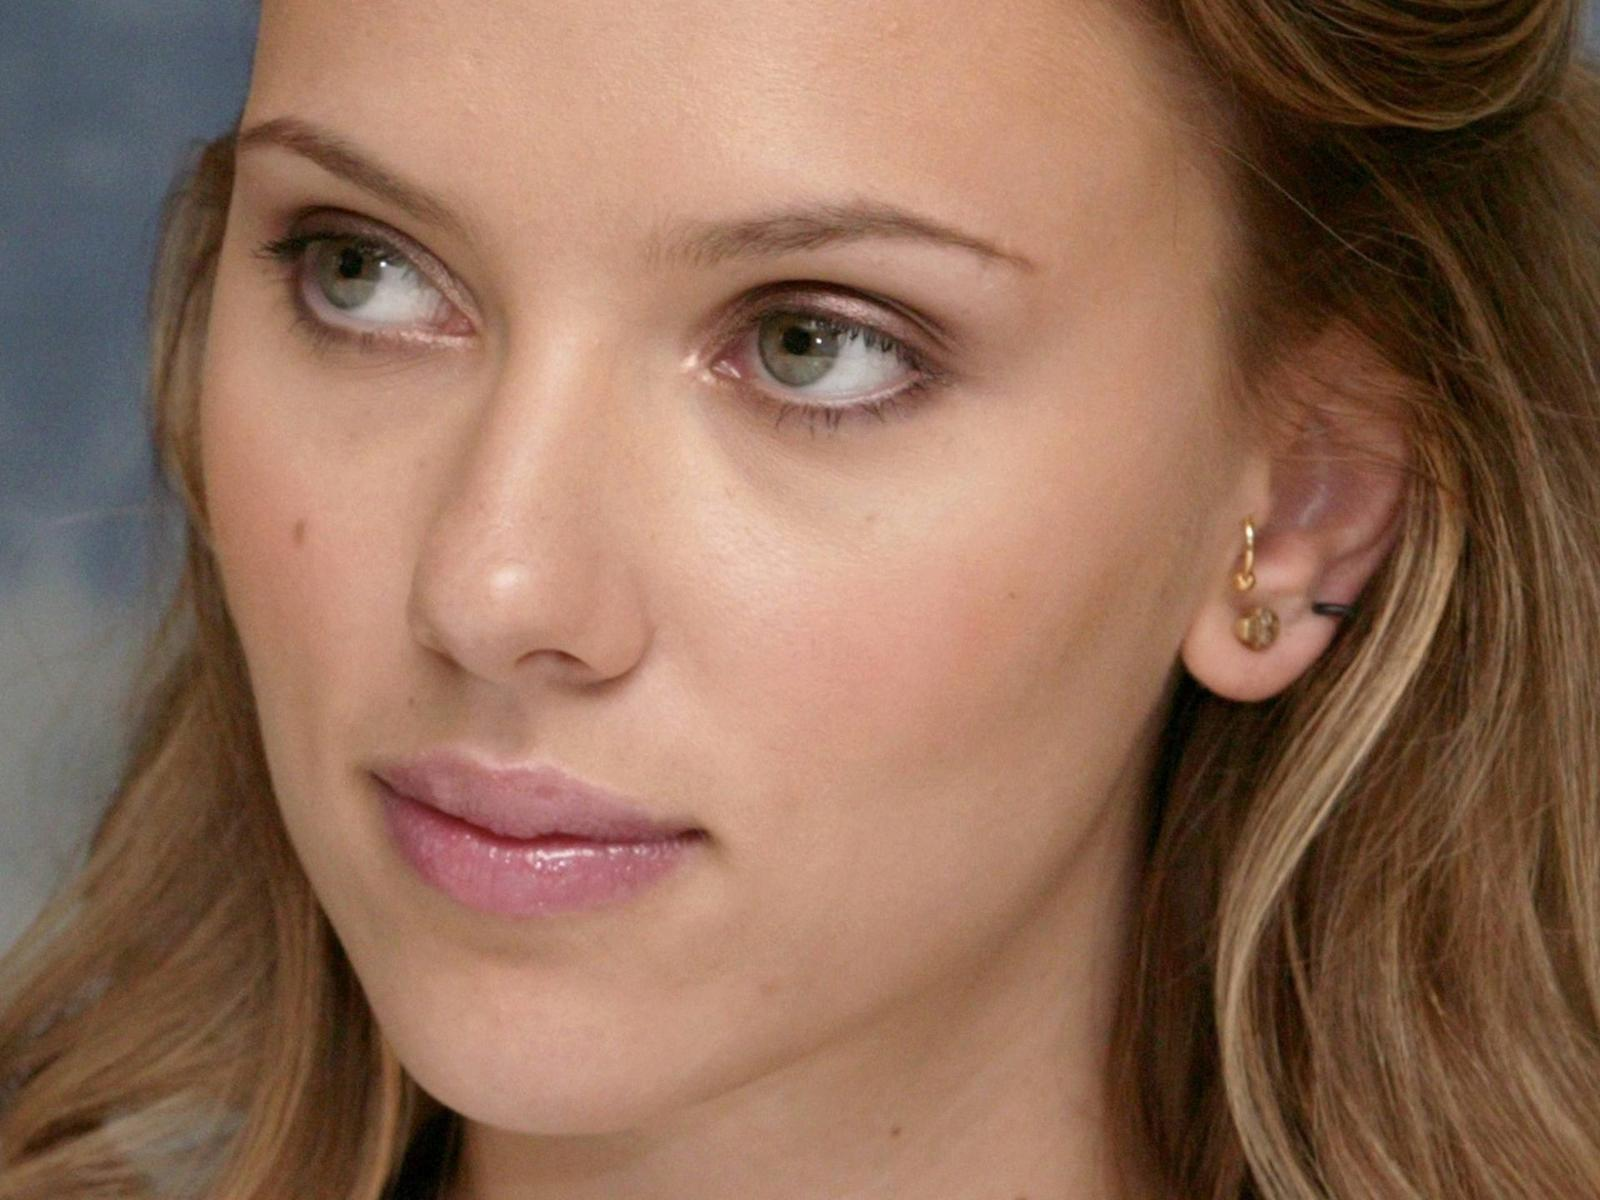 scarlett johansson-cute babe wallpaper | g 1988 beasts and beauty